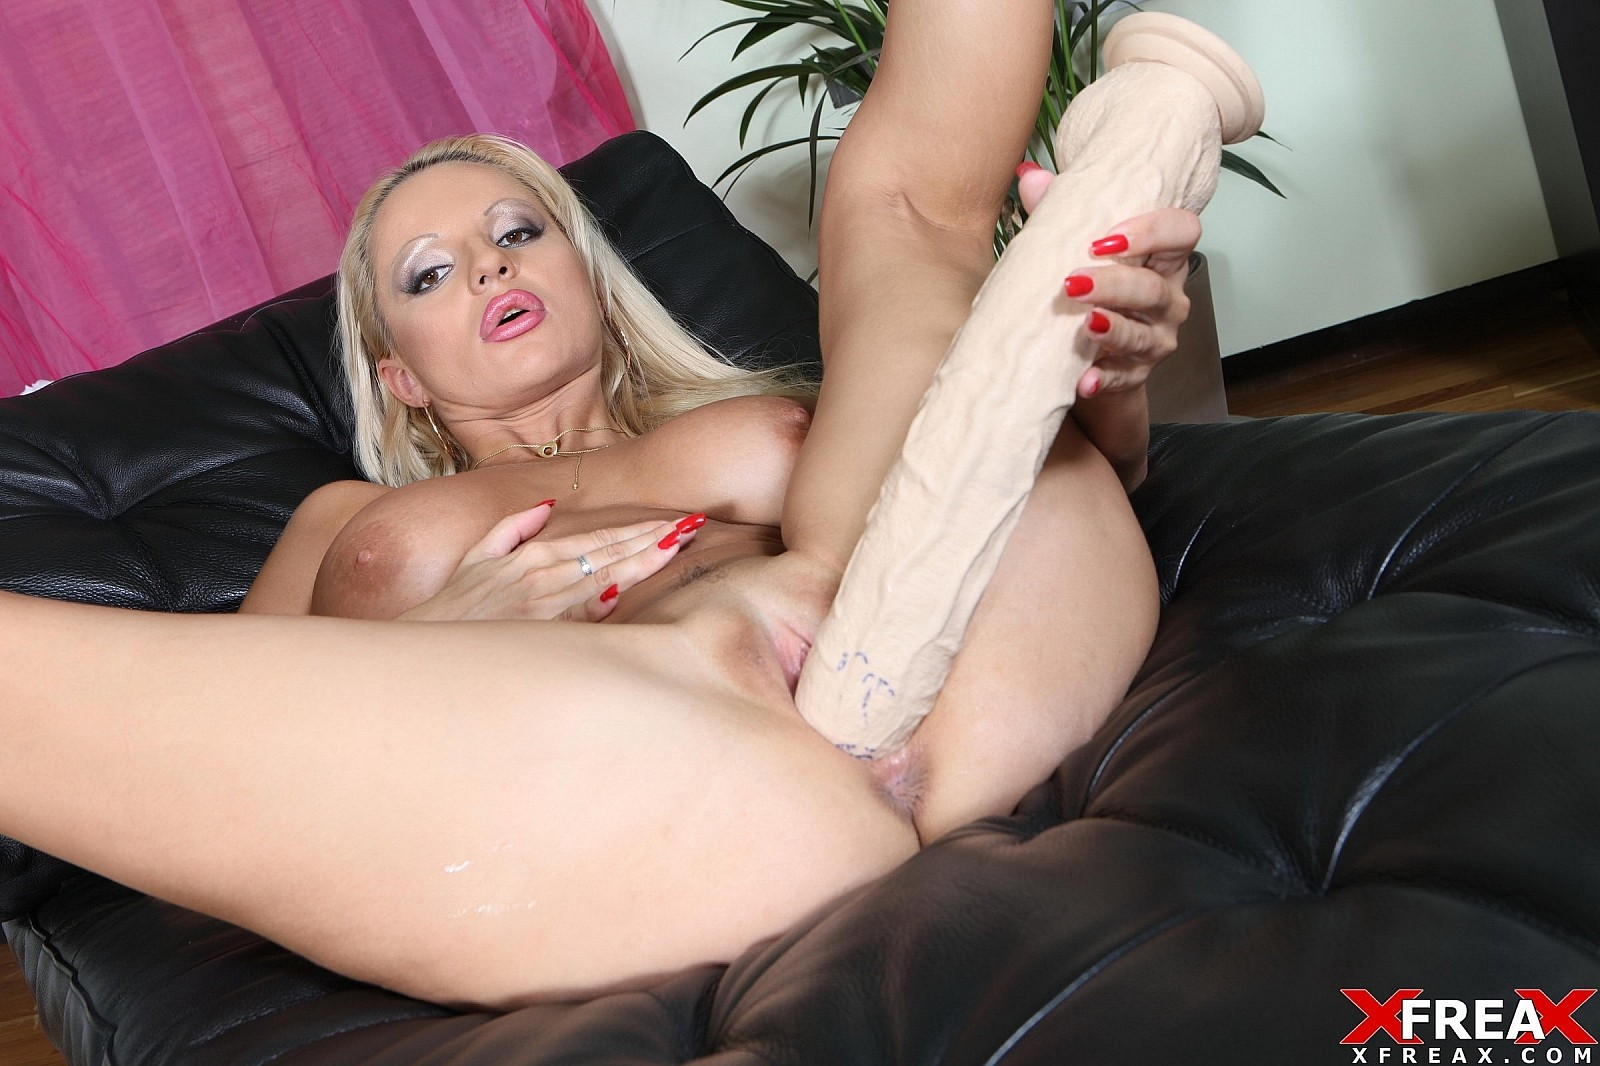 [DildoAndFisting] Busty Blond with Big Toys